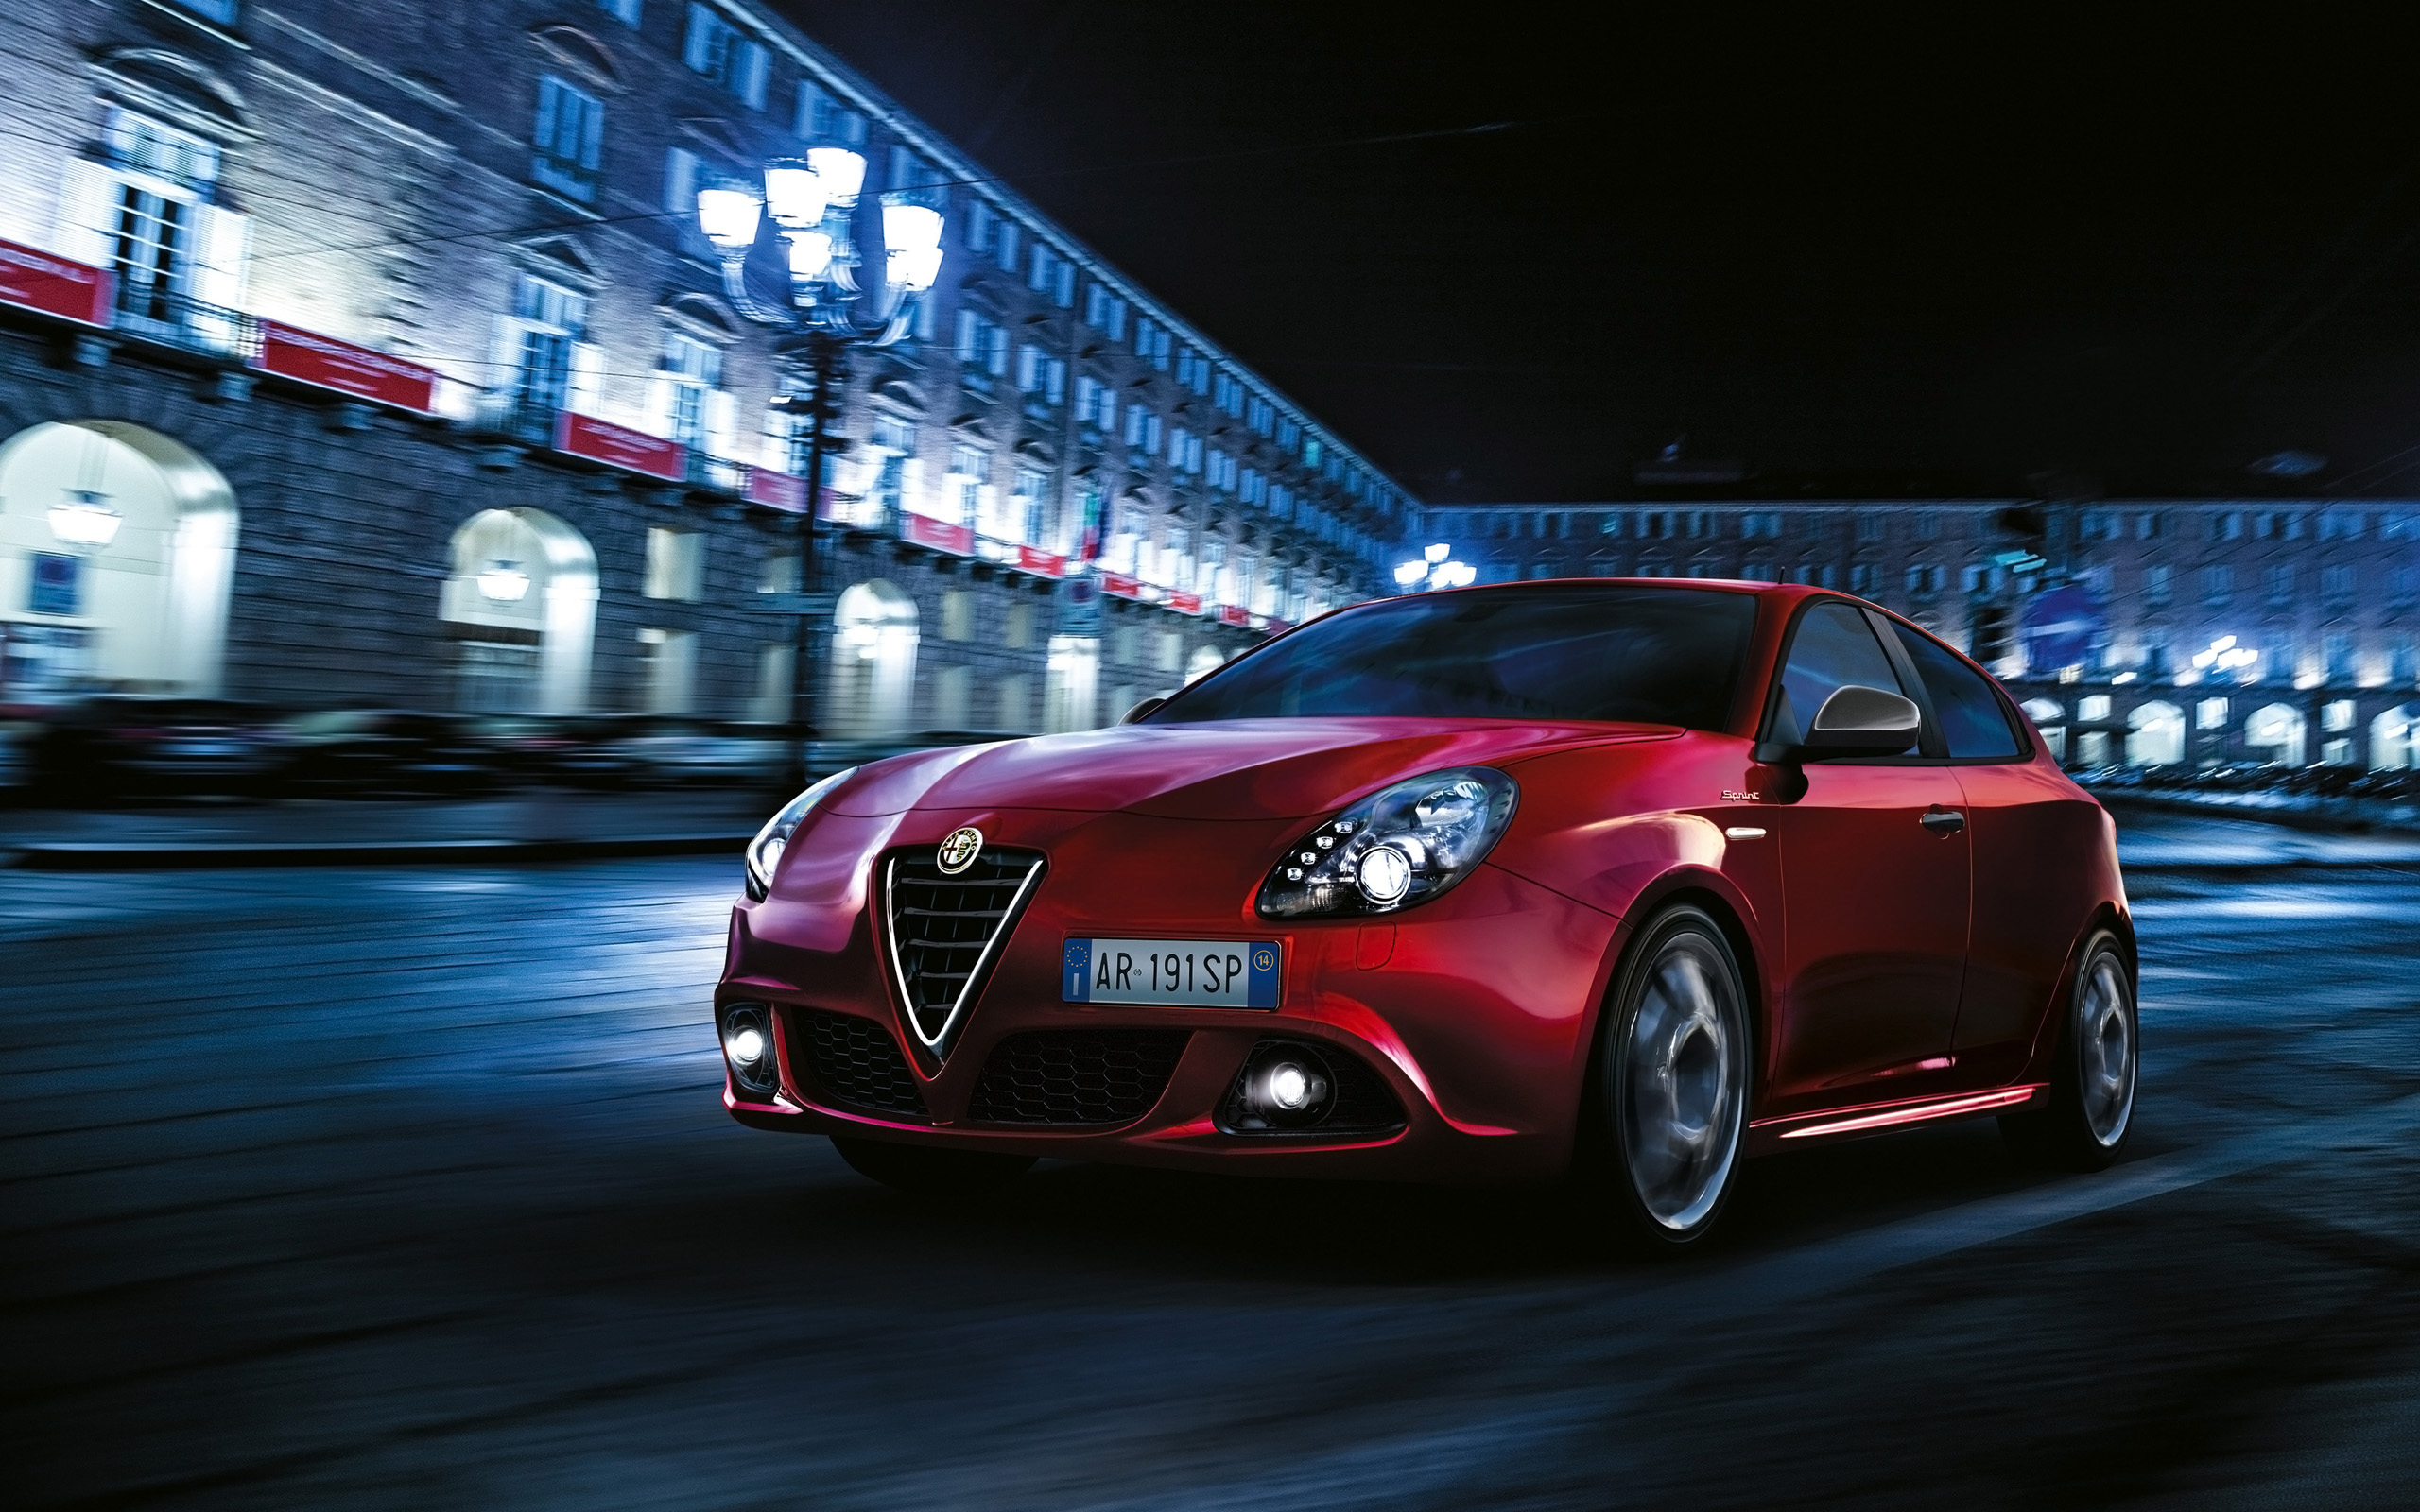 2015 alfa romeo giulietta sprint wallpaper hd car wallpapers id 4859. Black Bedroom Furniture Sets. Home Design Ideas